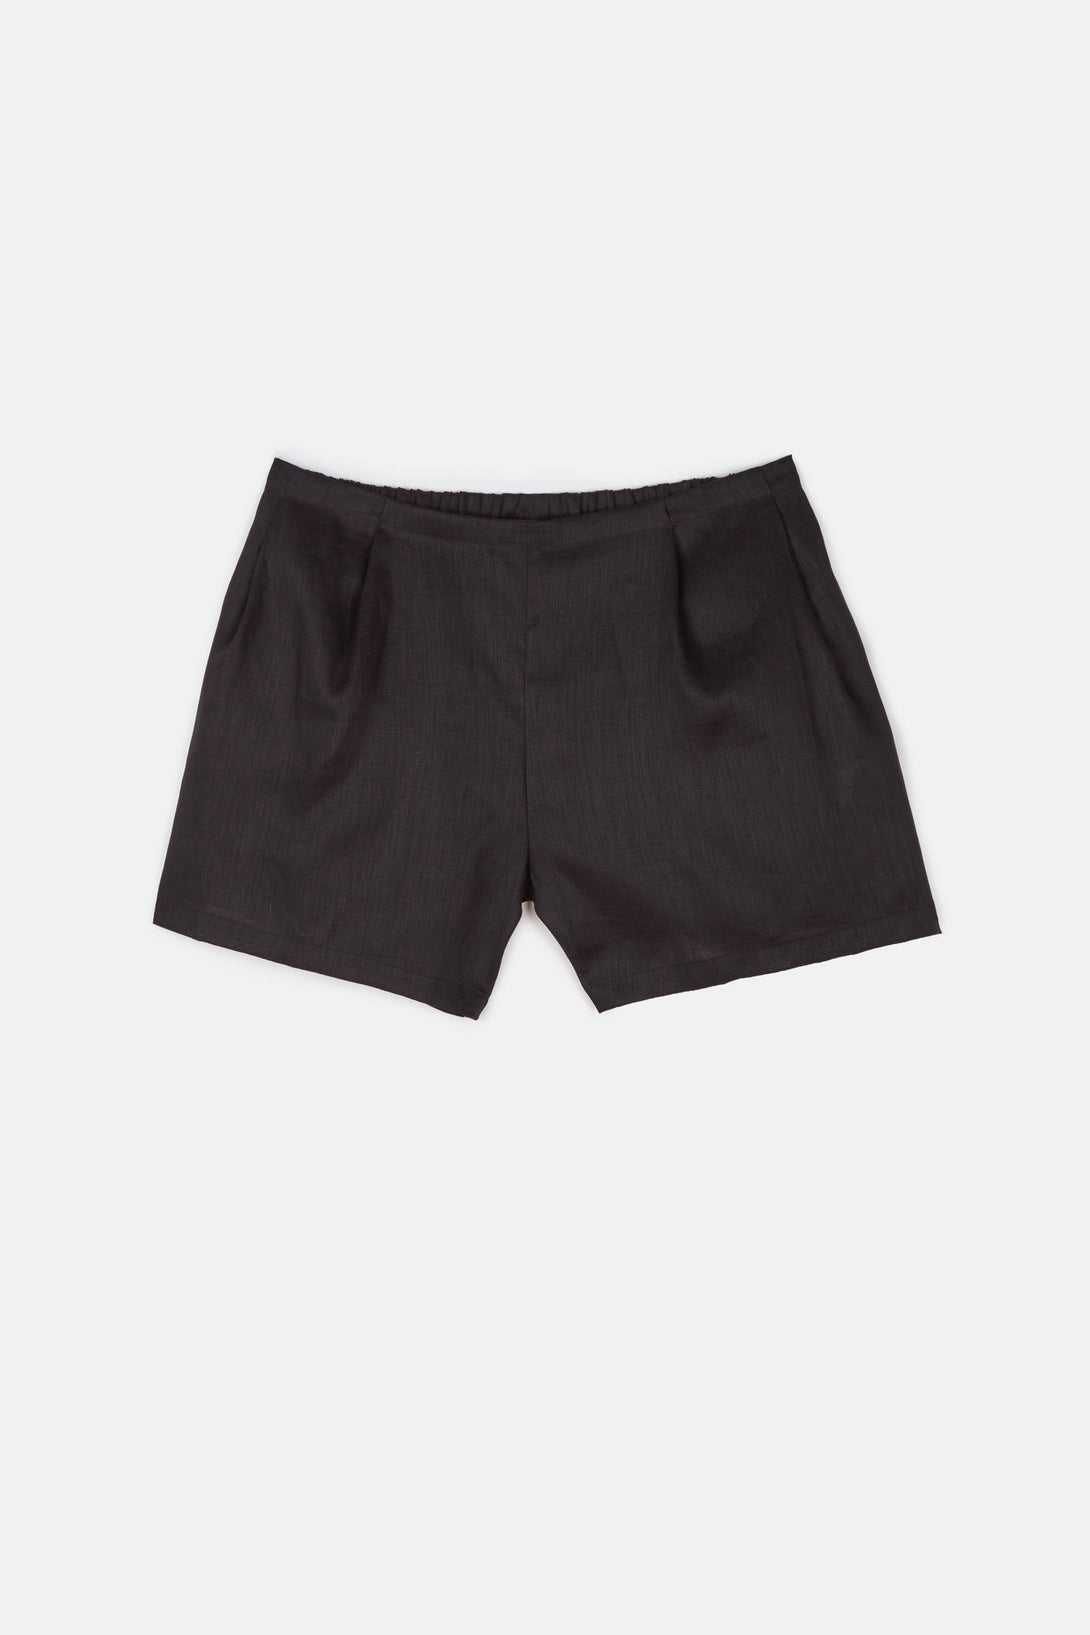 Pleat Short - Black Linen